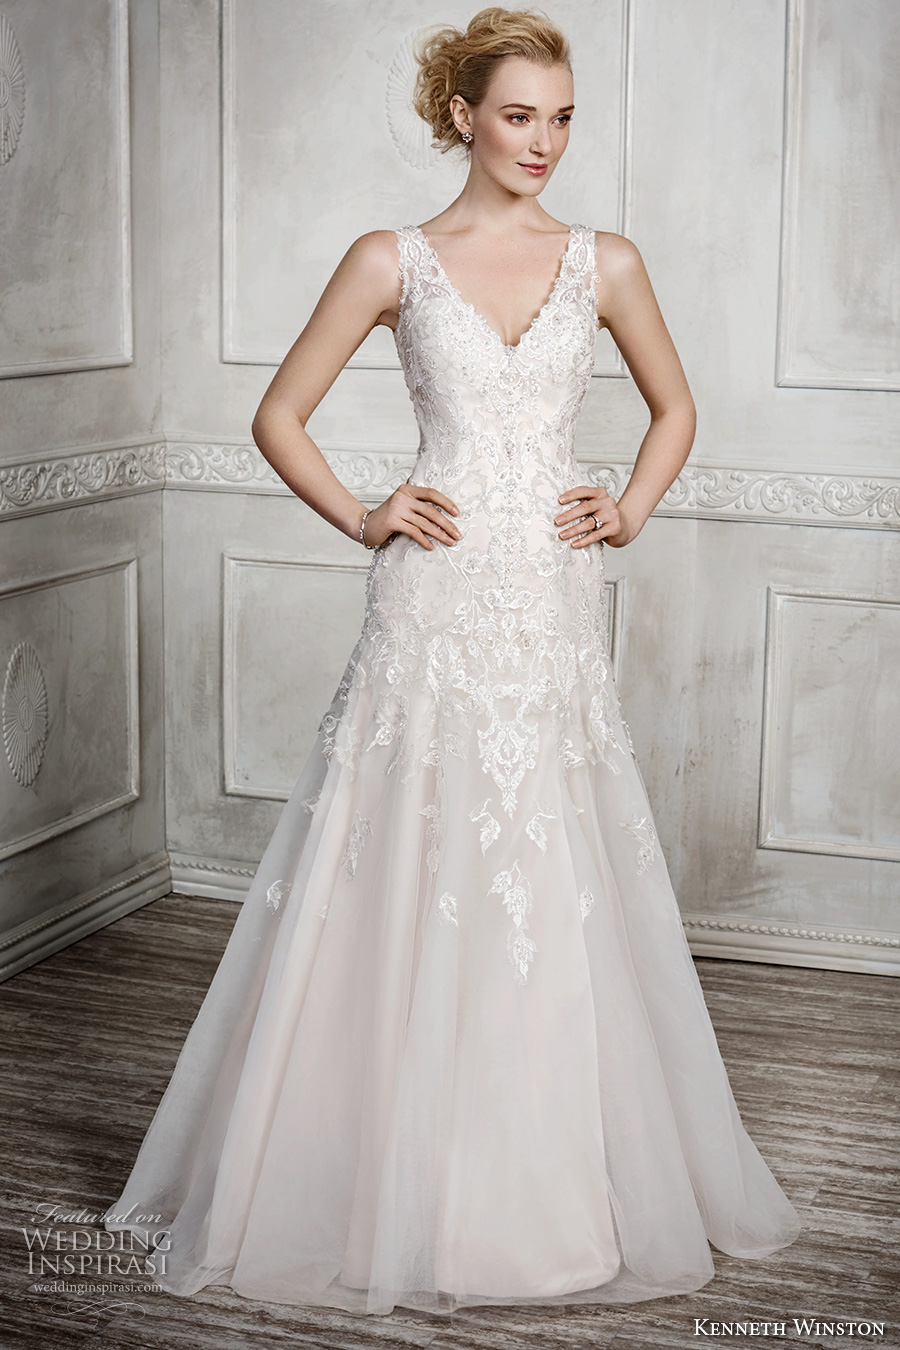 Kenneth winston fall 2016 wedding dresses wedding inspirasi for Sheer bodice wedding dress